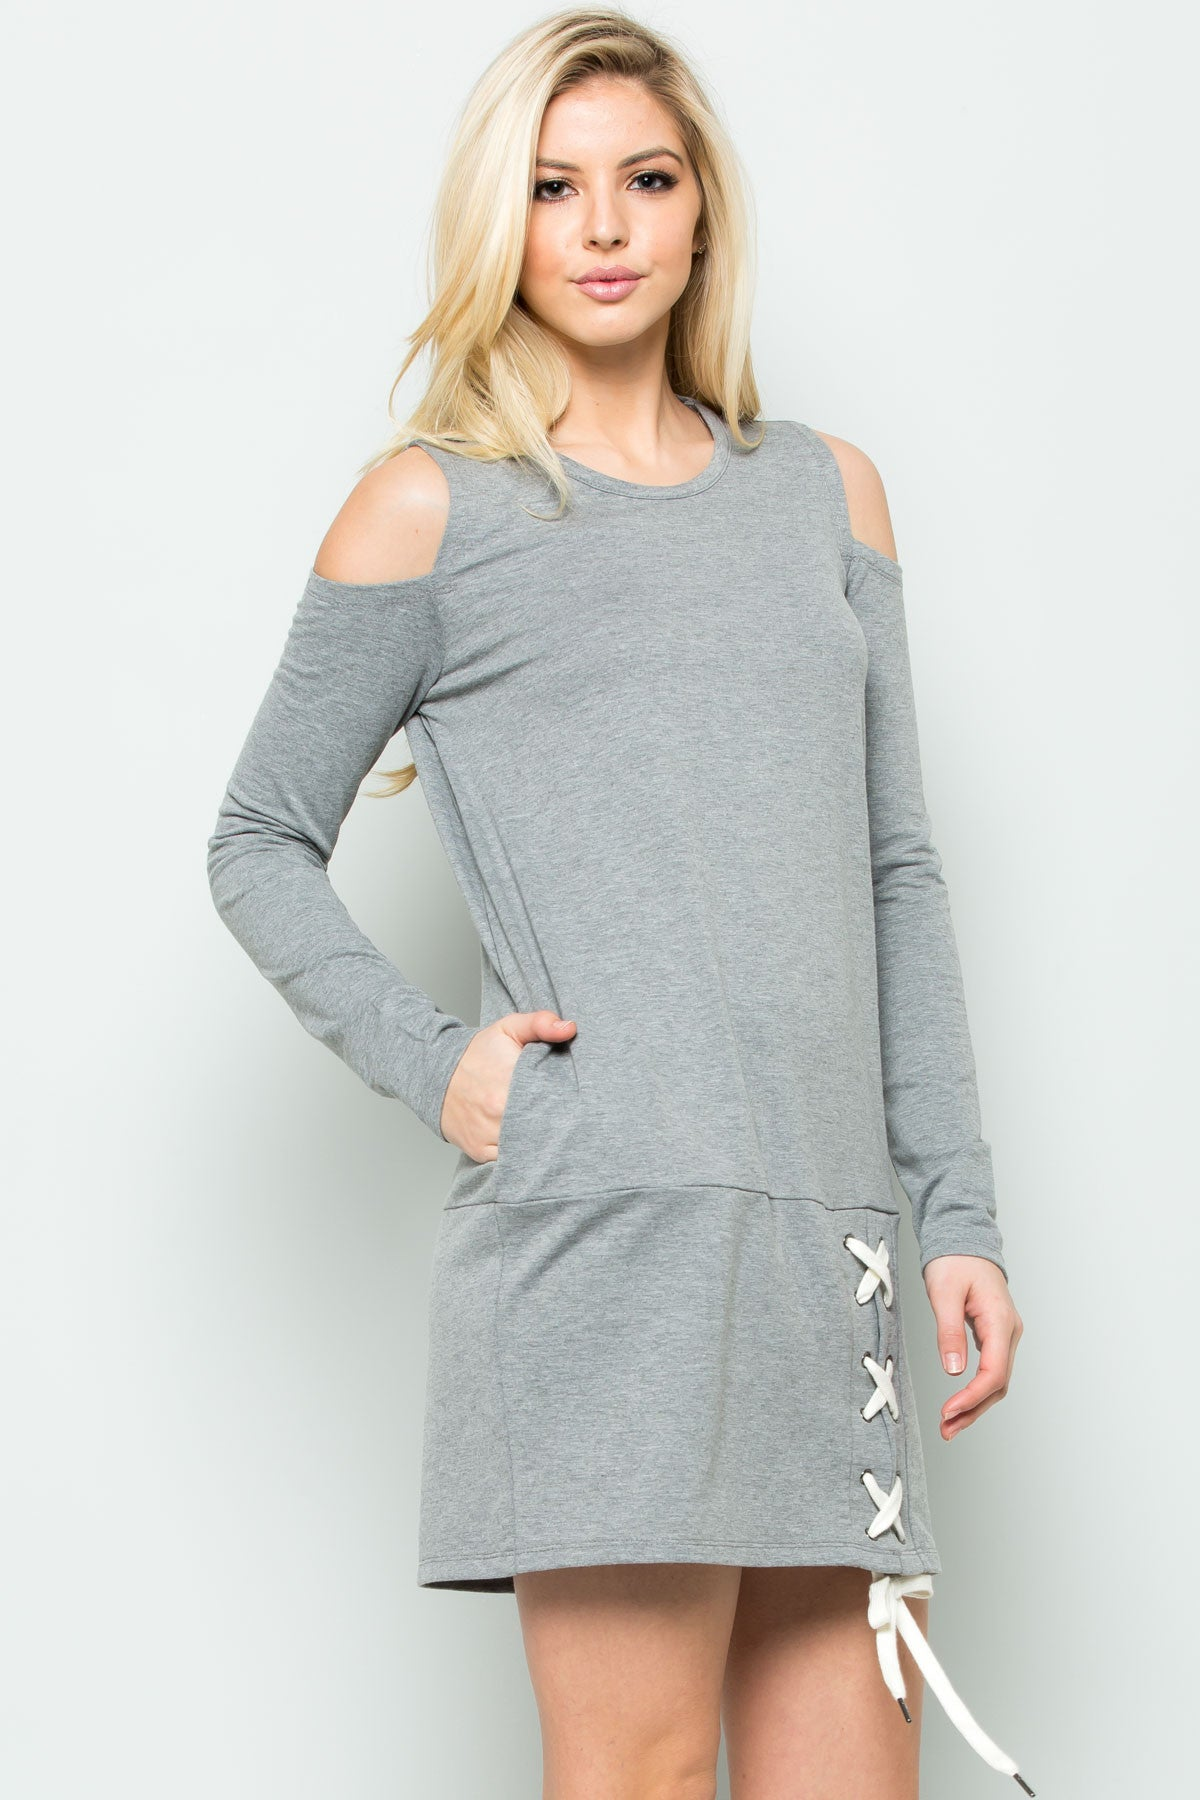 Cold Shoulder Lace Up Sweater Dress in Heather Grey - Dresses - My Yuccie - 5